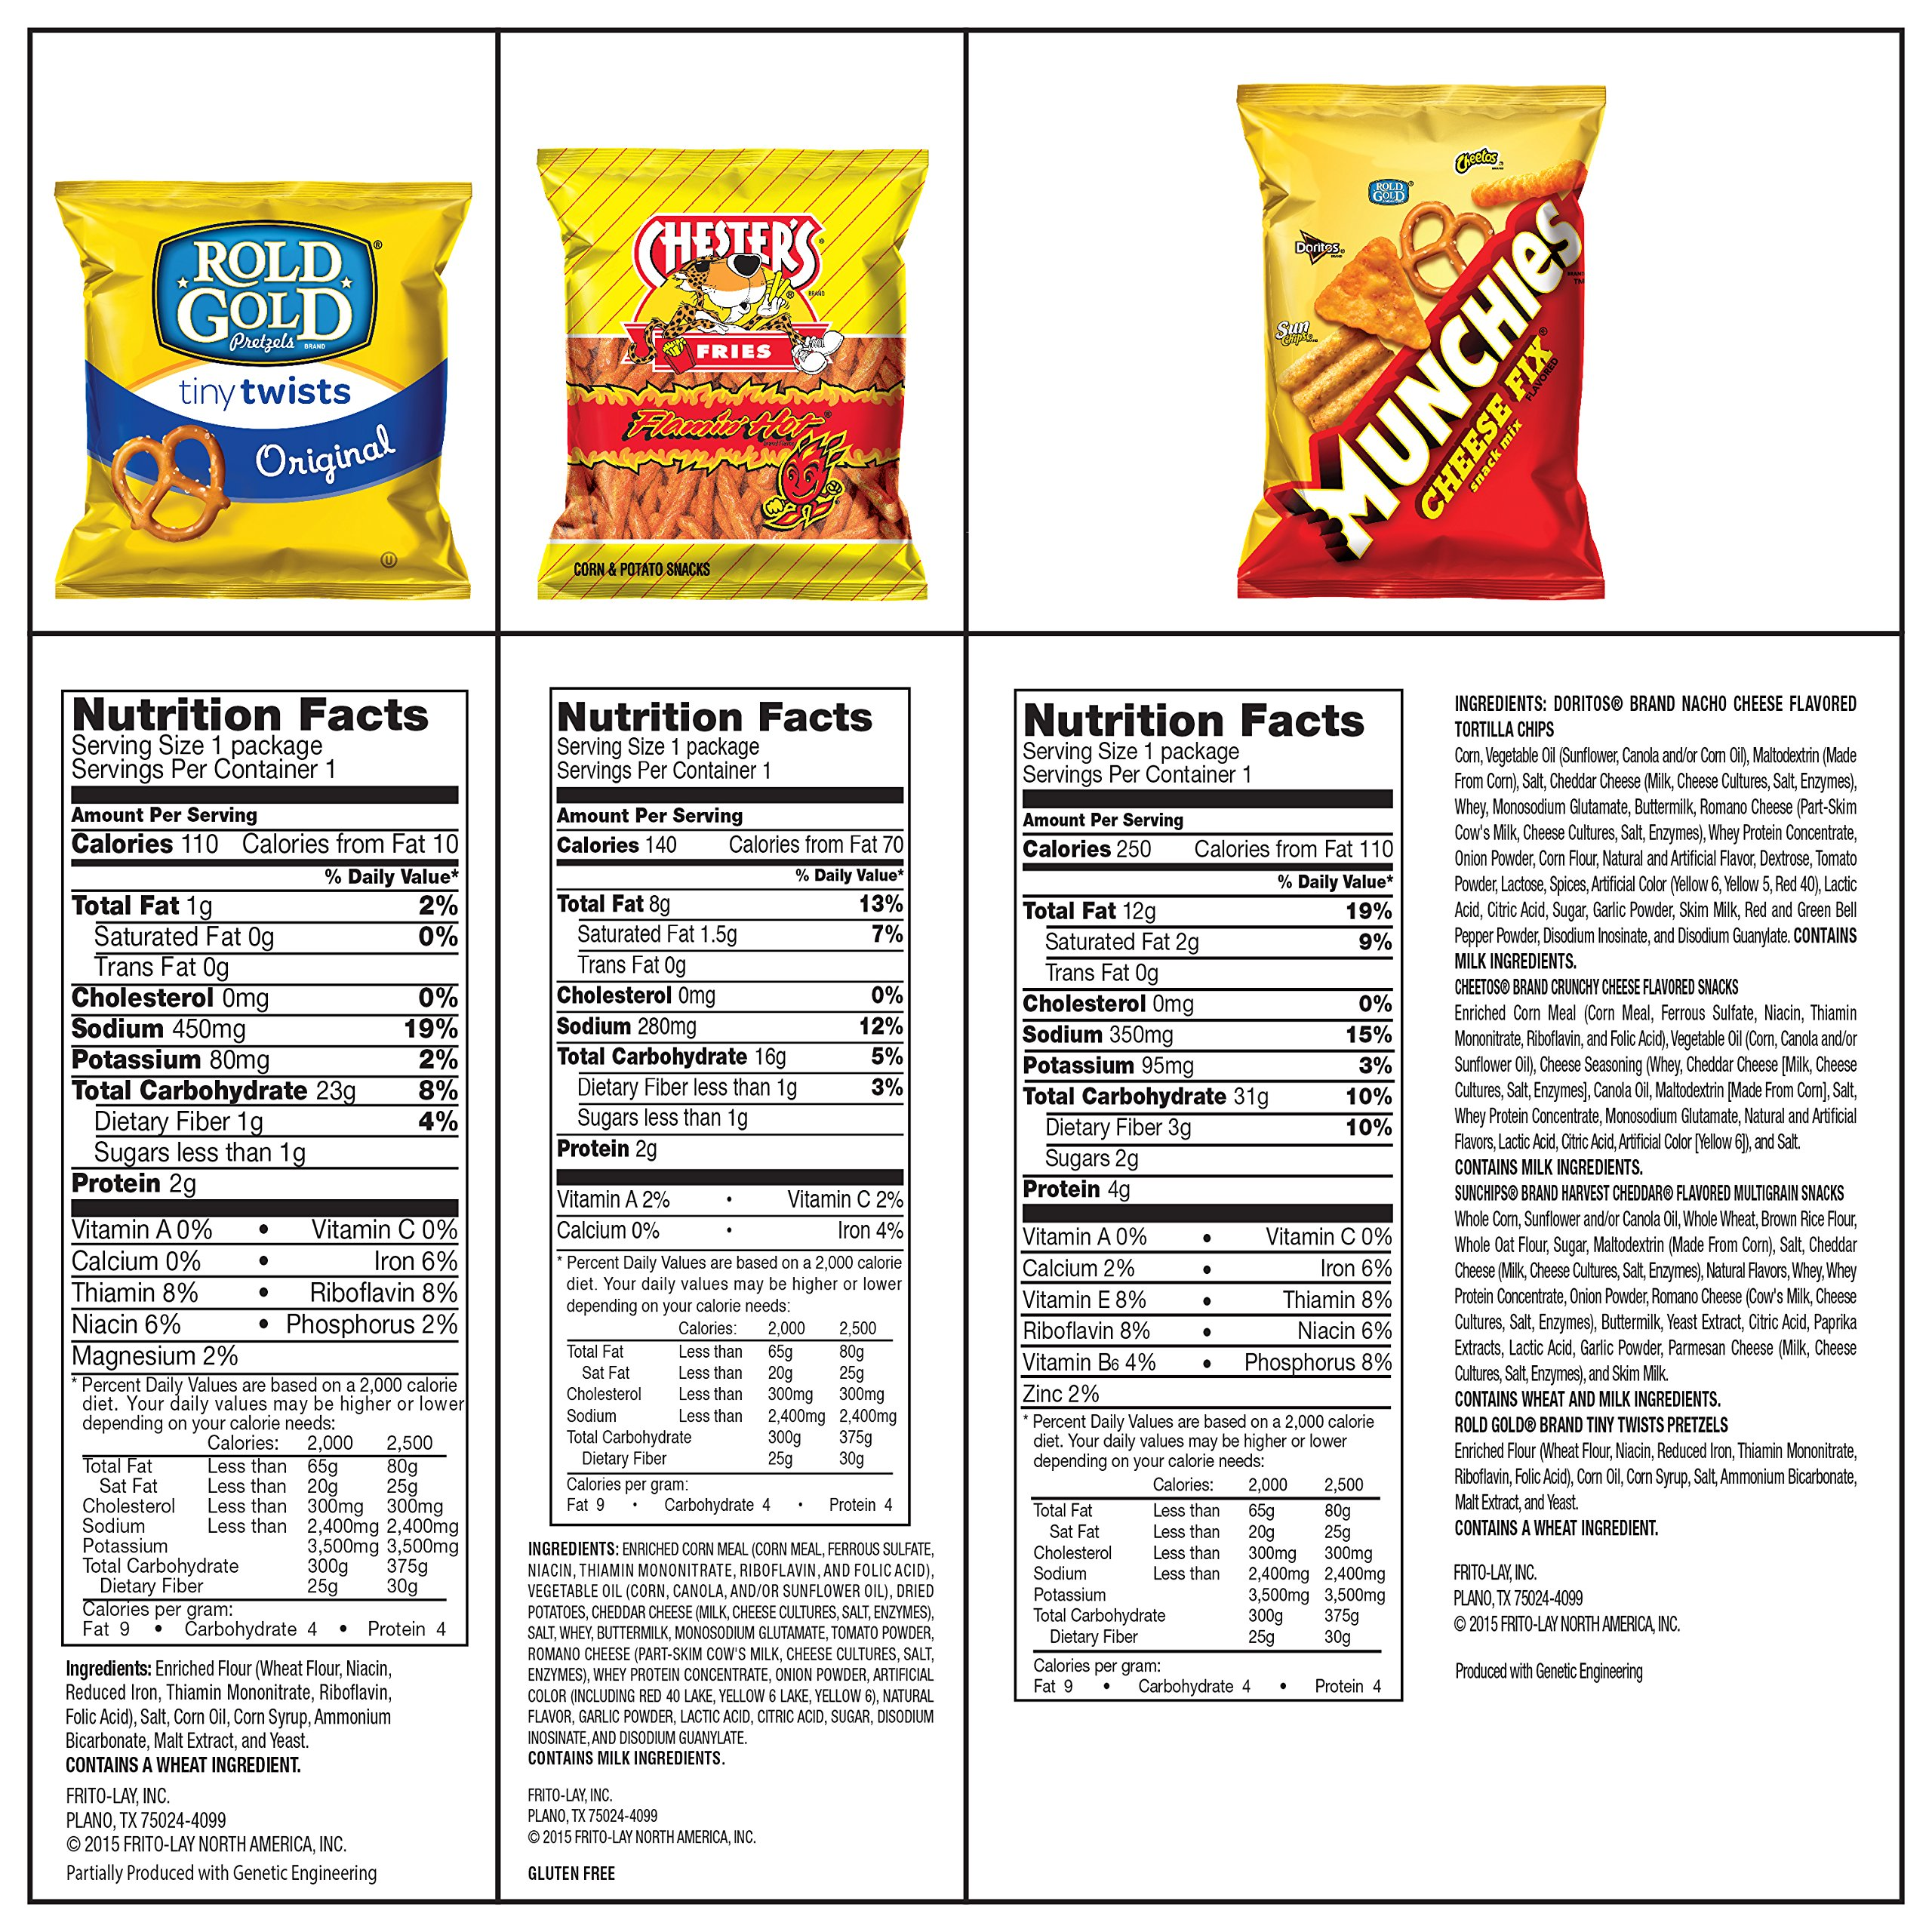 Ultimate Snack Care Package, Variety Assortment of Chips, Cookies, Crackers & More, 40 Count by Frito Lay (Image #4)